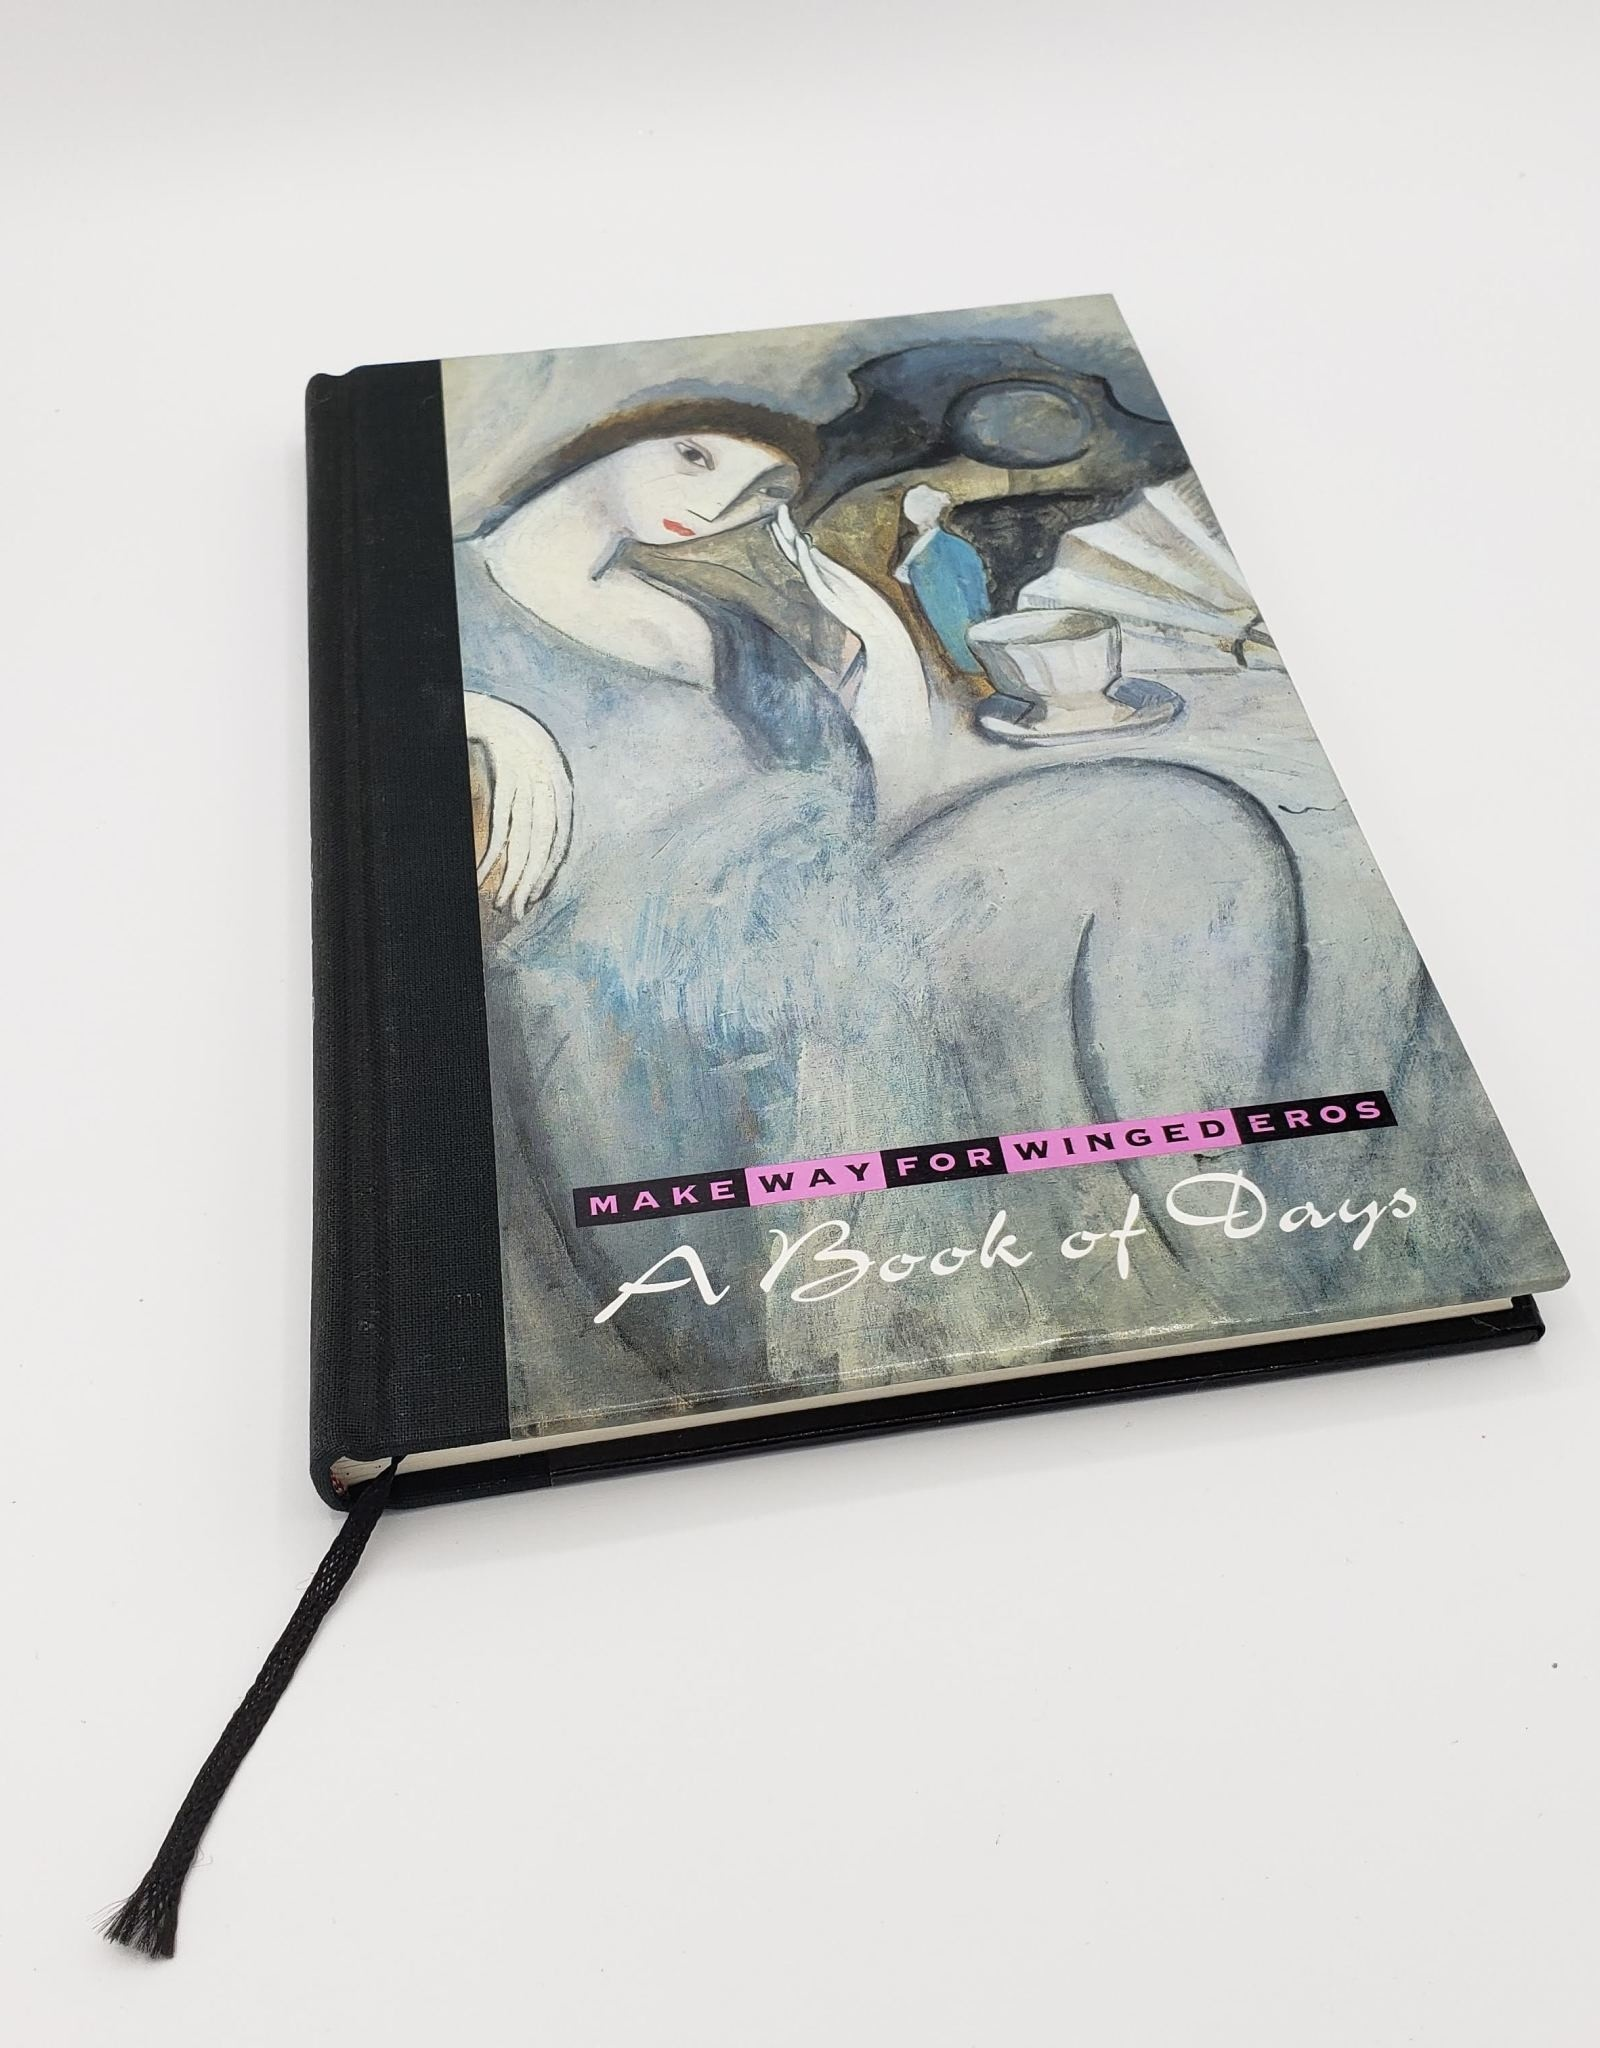 """""""Make Way For Winged Eros: A Book of Days"""" by Pomegranate Books"""